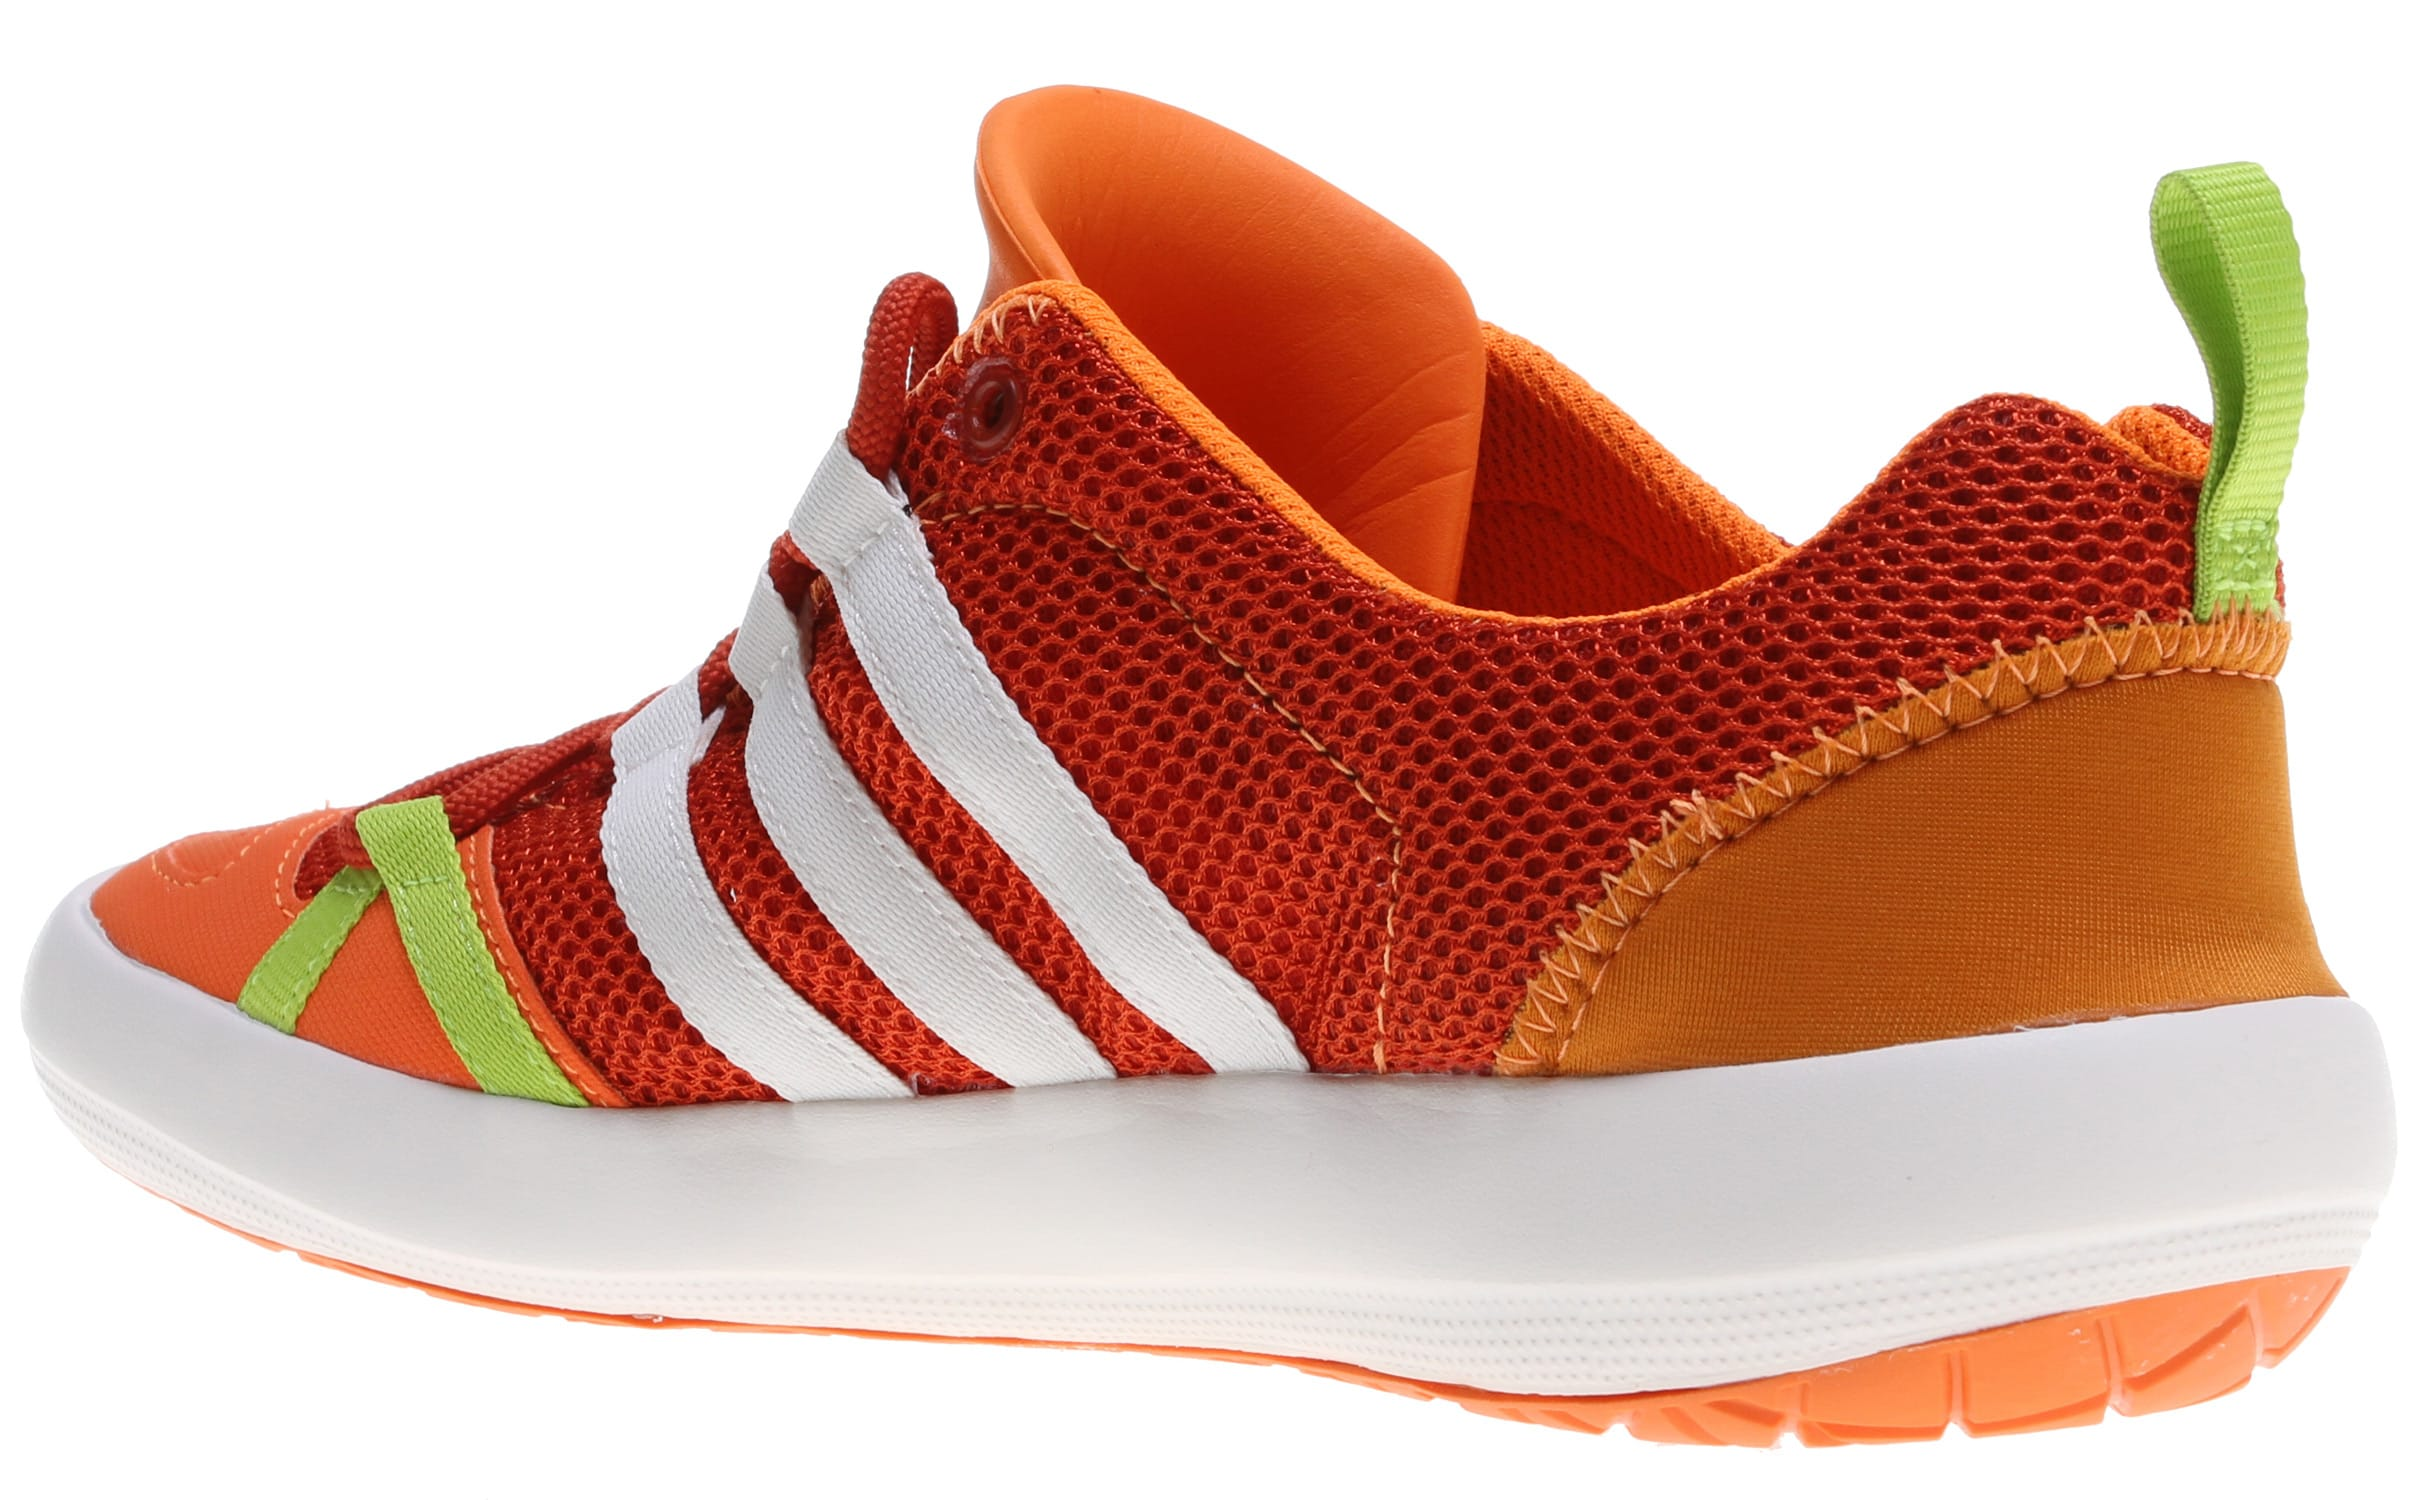 on sale adidas climacool boat lace water shoes up to 55 off. Black Bedroom Furniture Sets. Home Design Ideas